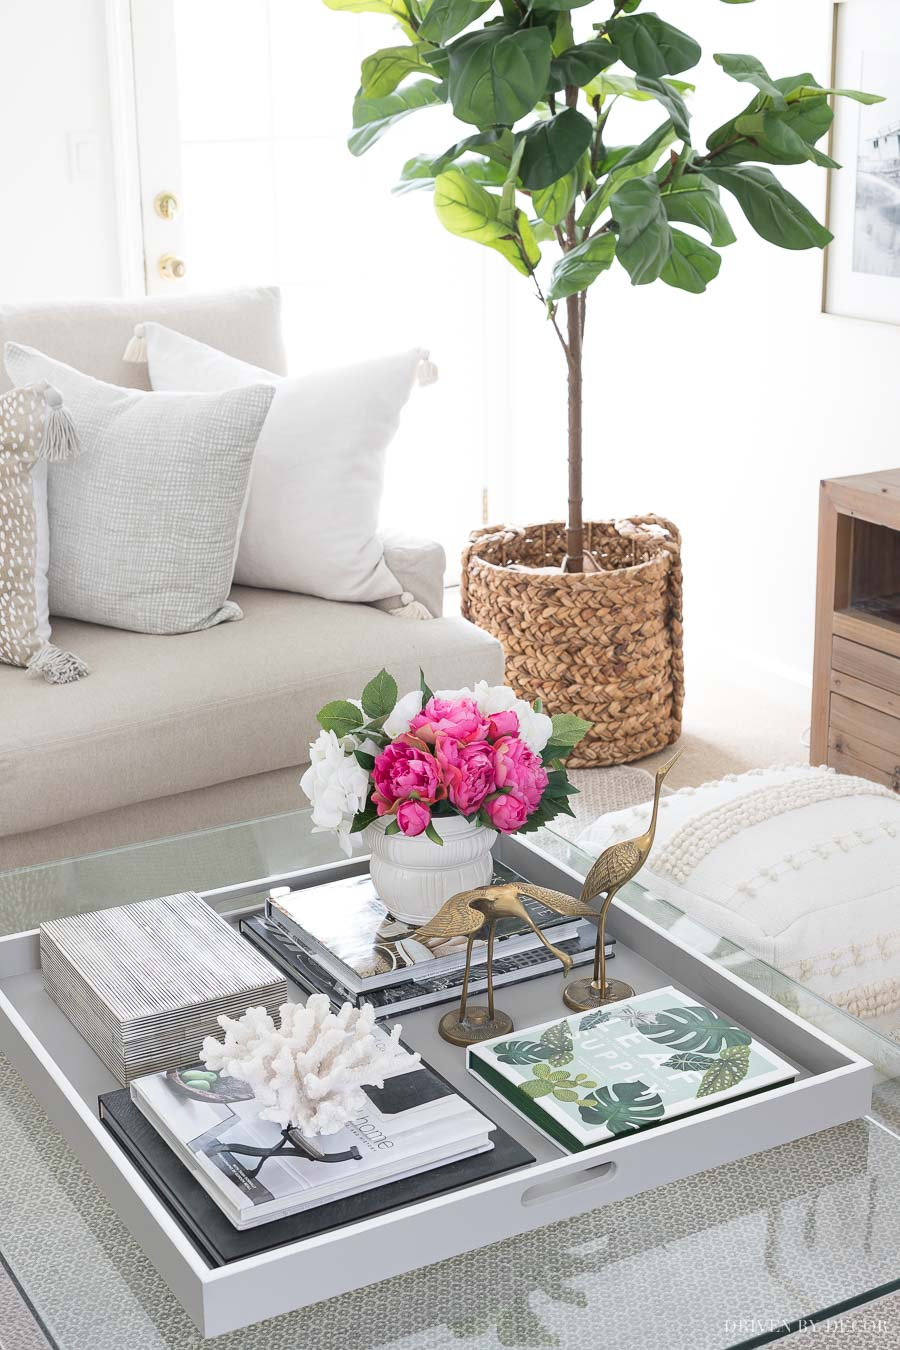 Great post on coffee table decor with tips for styling your own!